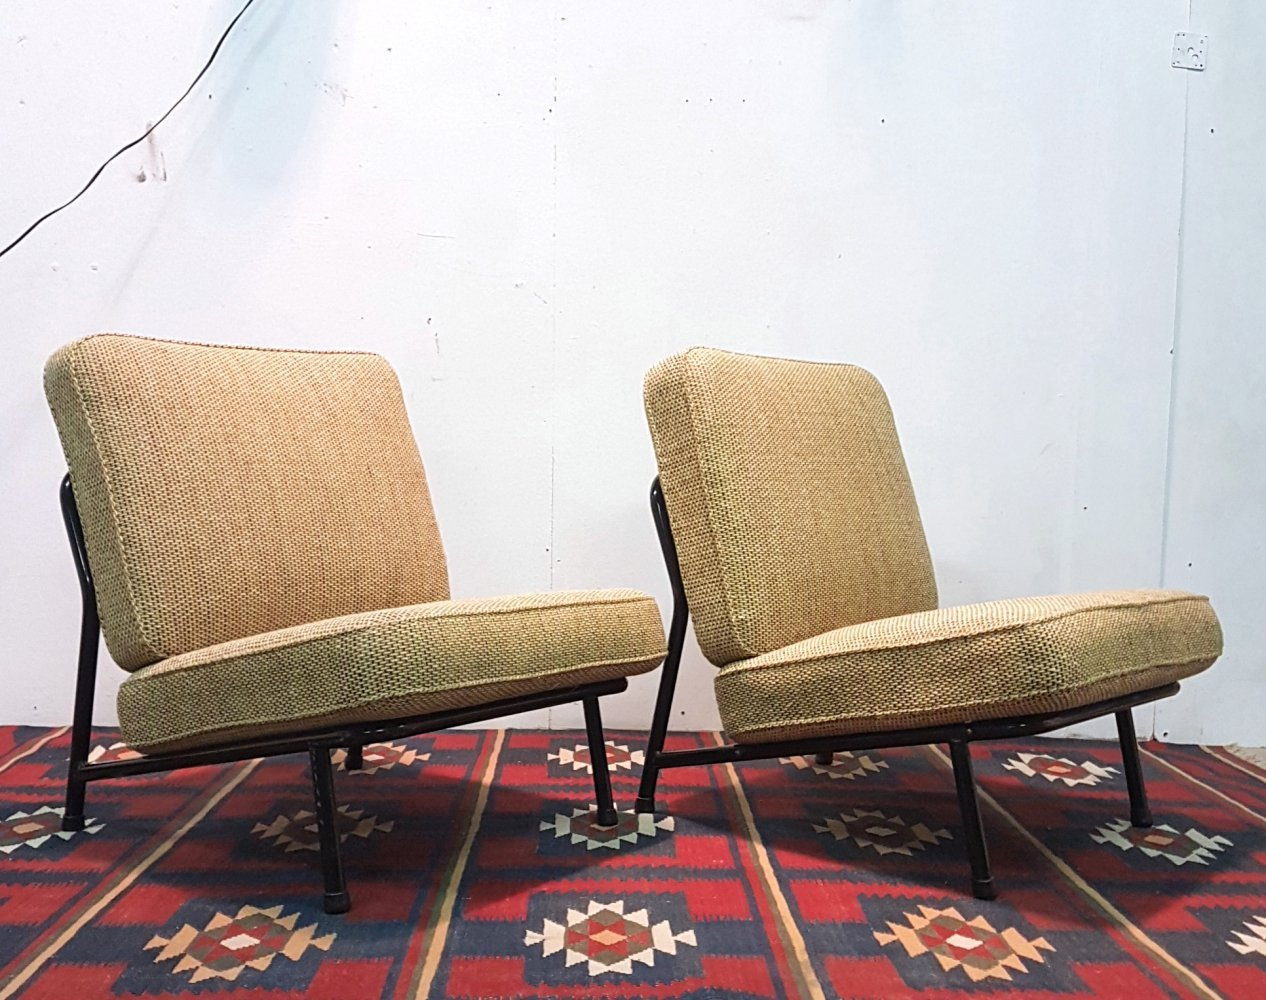 Scandinavian modern lounge chairs by Alf Svensson for DUX, Sweden 1960s